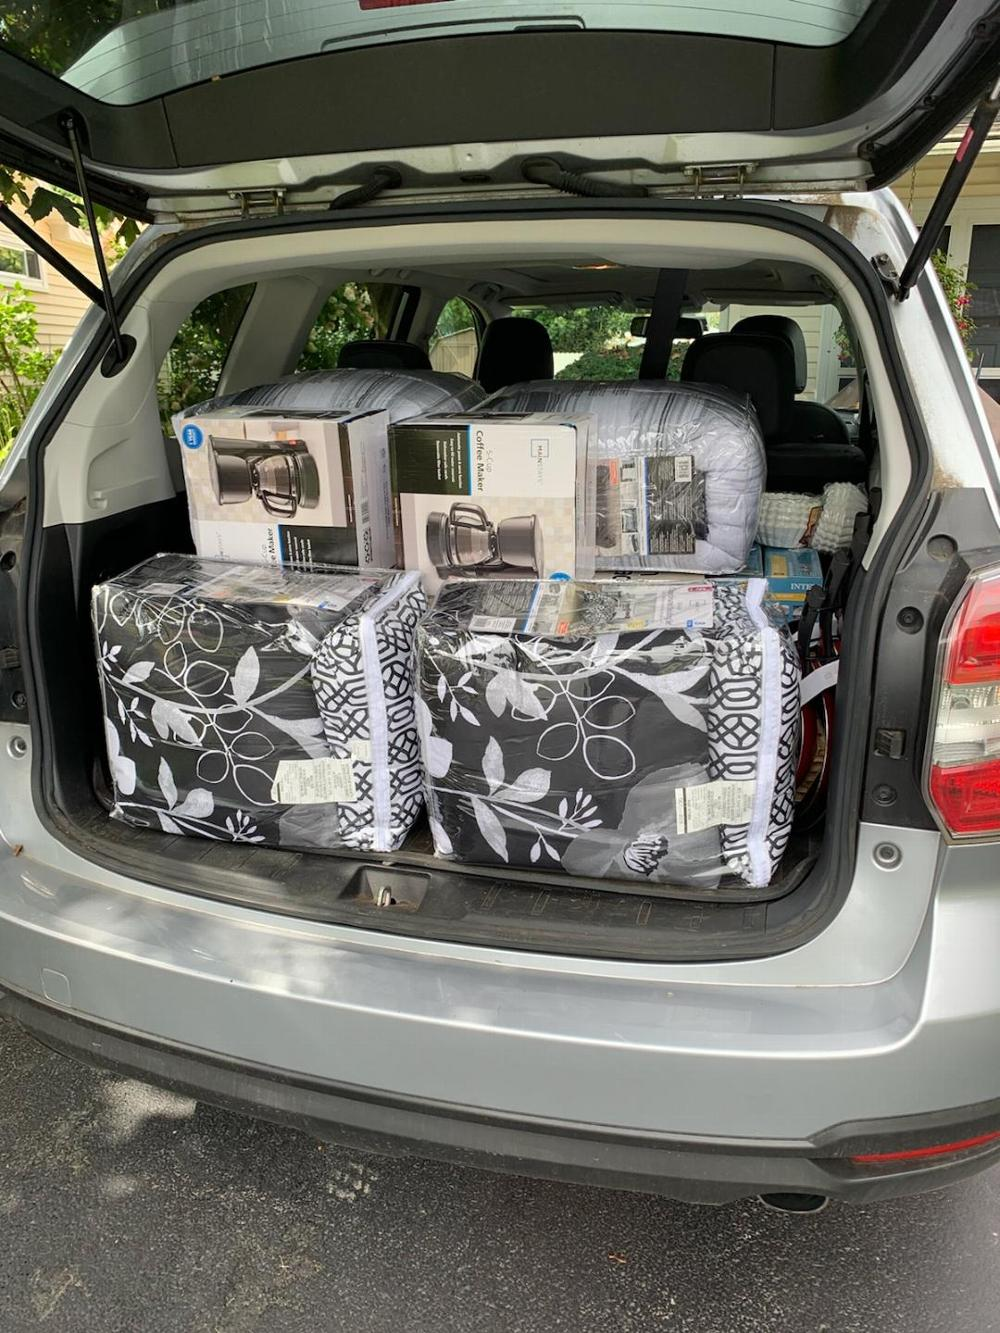 One of many trunk loads of goods supplied to the vets re-homing project. By mid-December 2019, the Lodge had assisted in re-homing over 140 homeless vets.